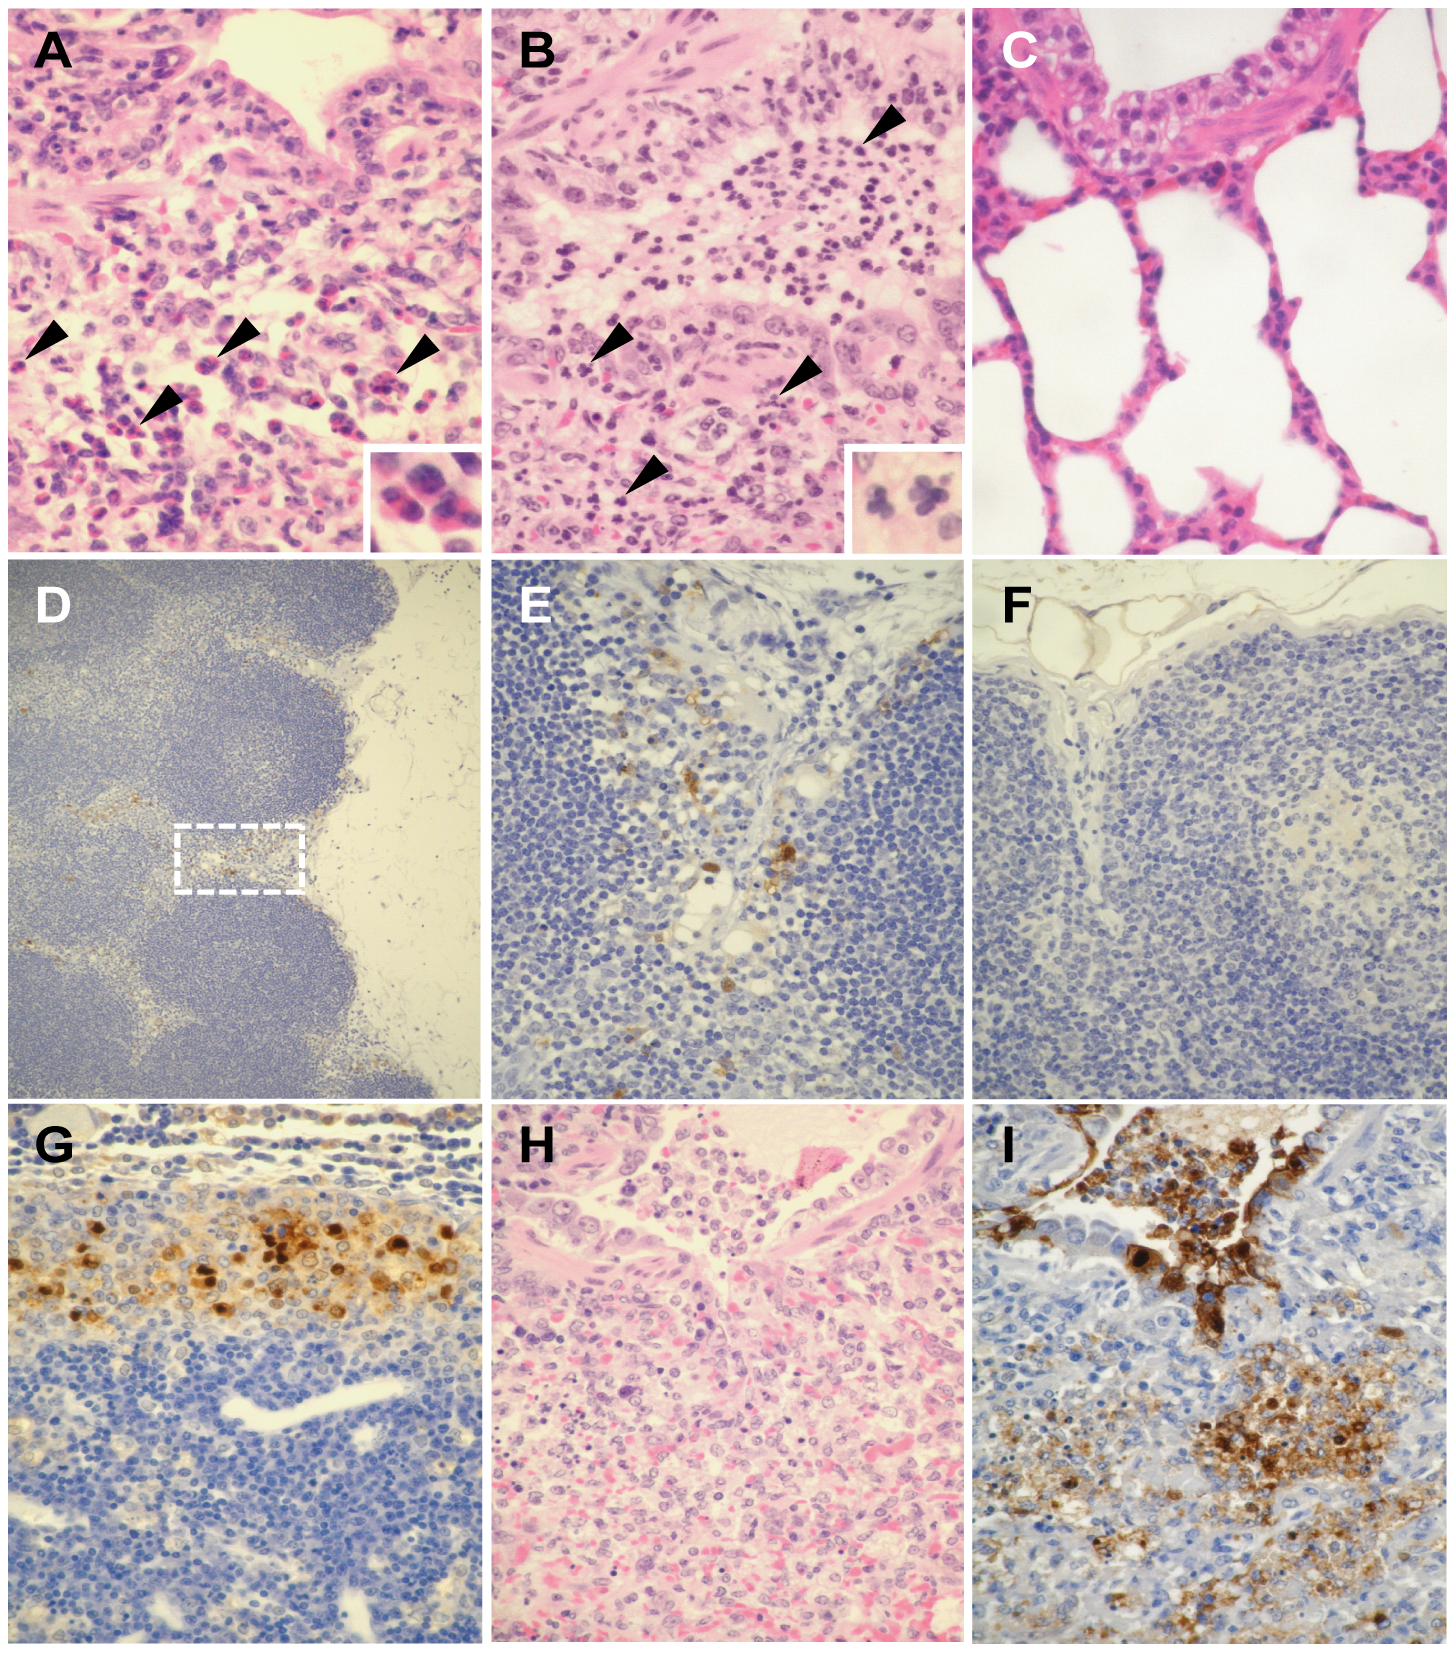 Pathological findings in ferrets infected with UT3062 or 3062(HA+NS).